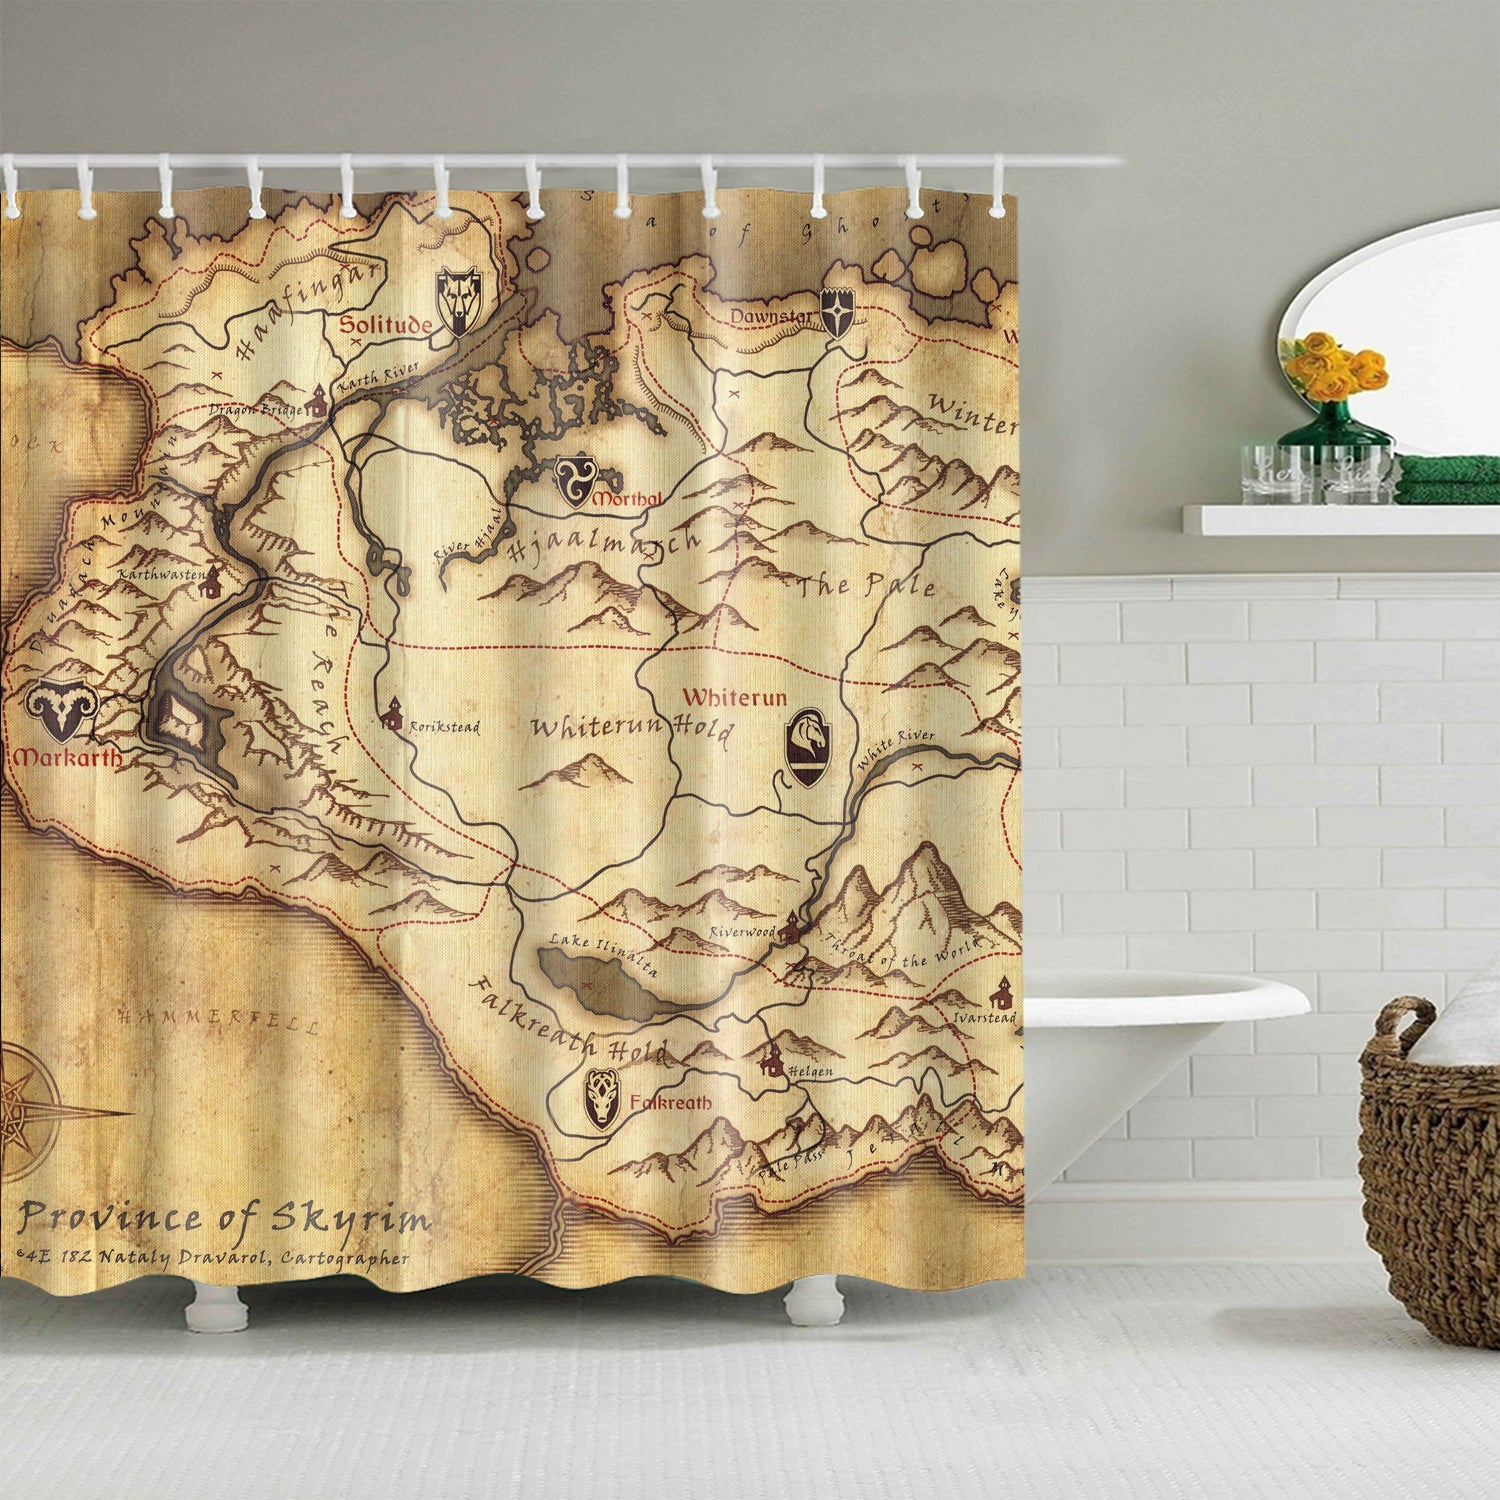 Province of Skyrim The Elder Scrolls Map Shower Curtain